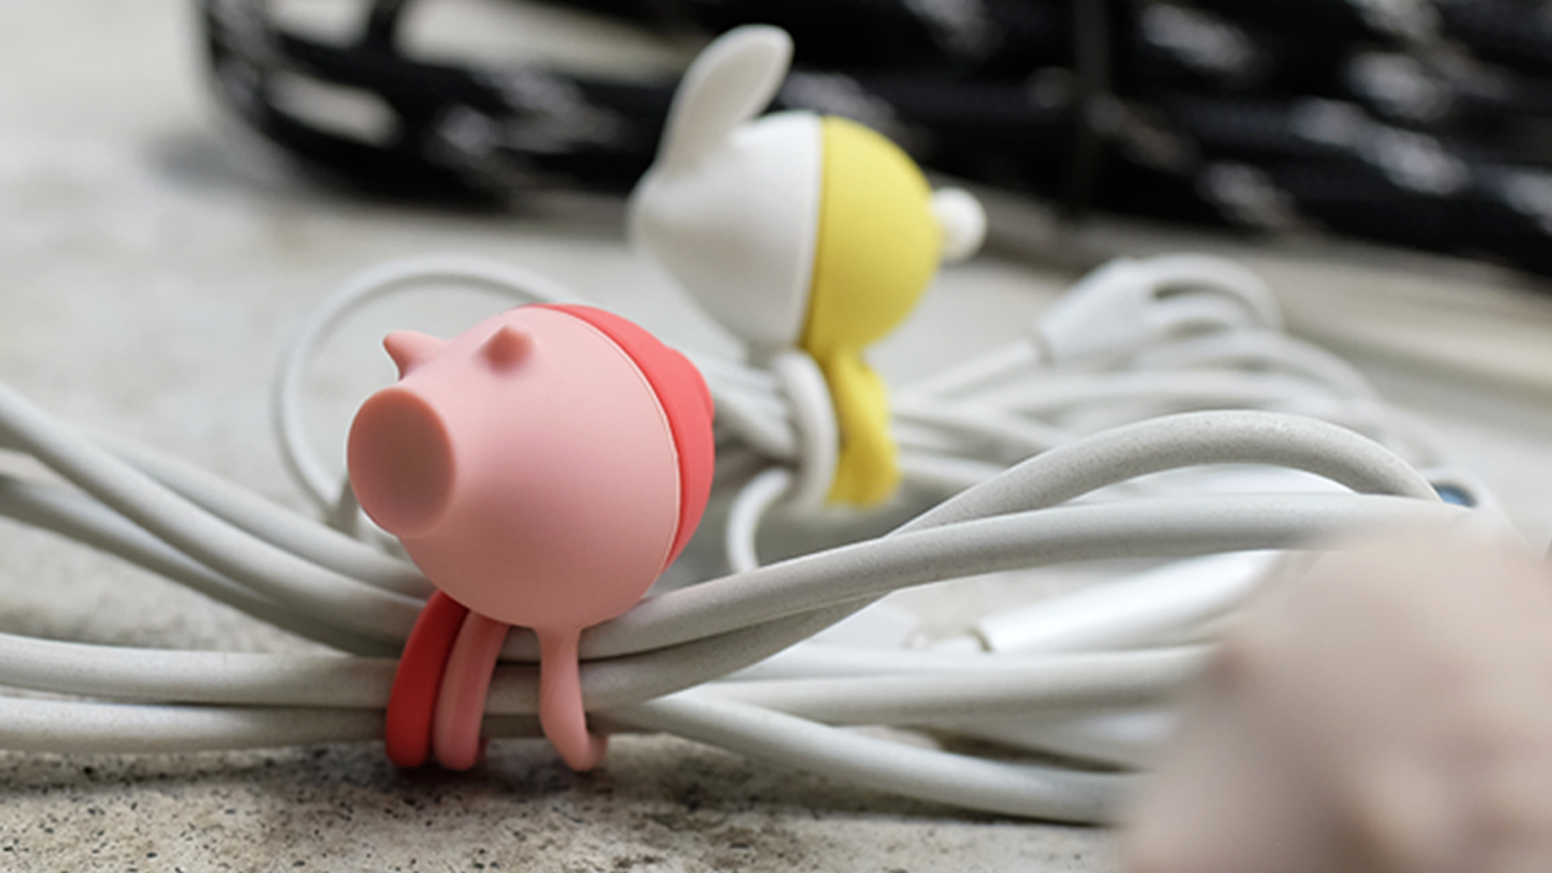 Magnetic, flexible, fit for all cables. The best organizing solution with adorable animal shapes. FREE shipping!